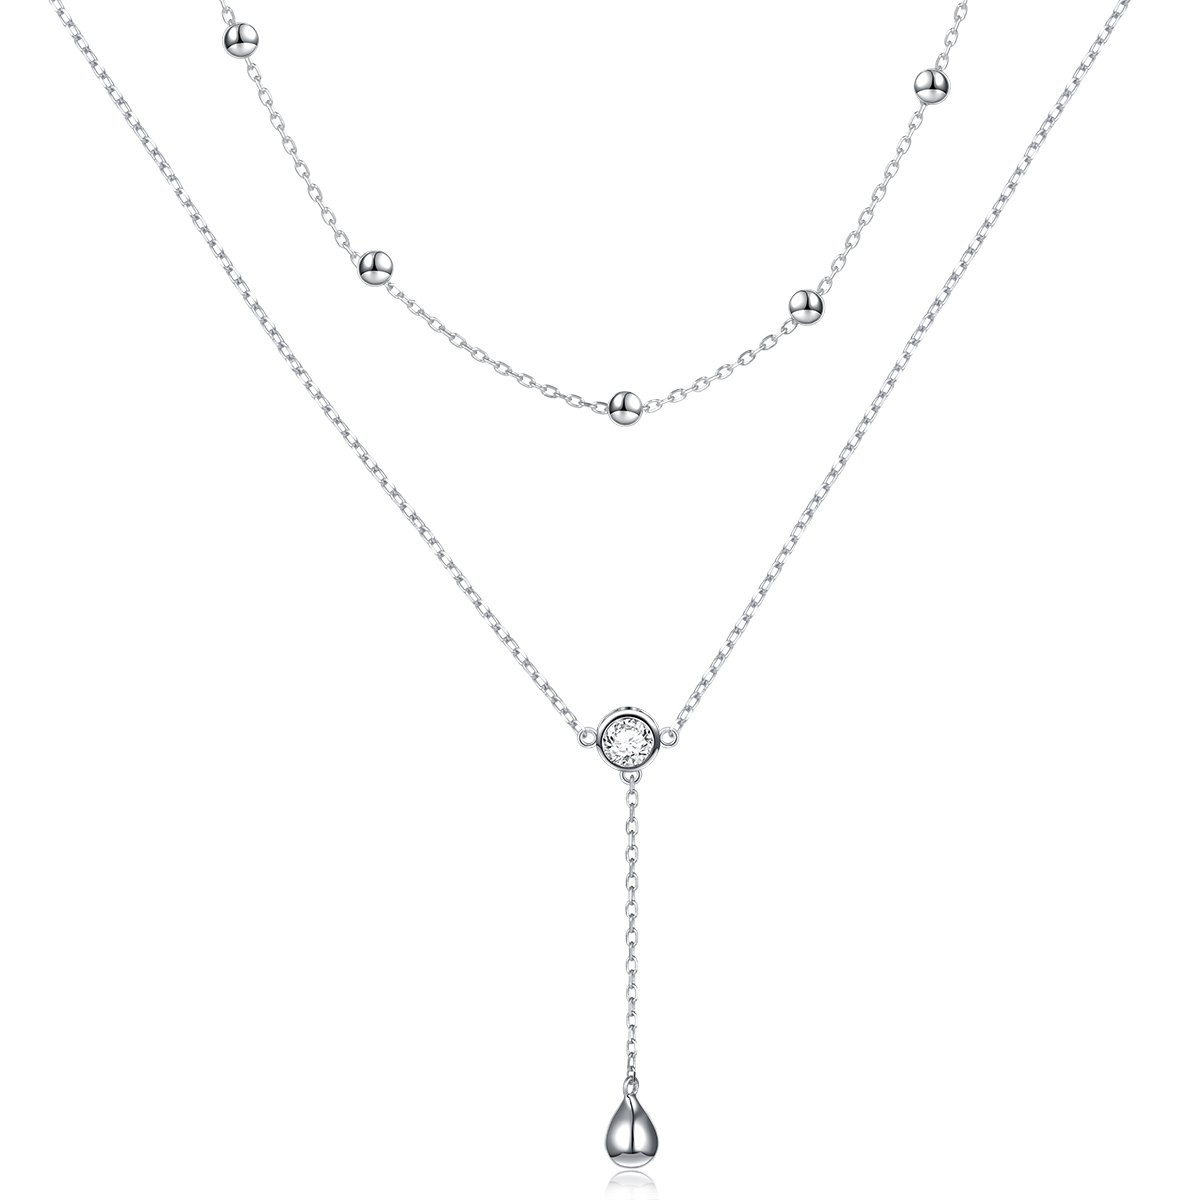 Sterling Silver Teardrop Double Layered Choker Y Lariat Necklace for Women Girls